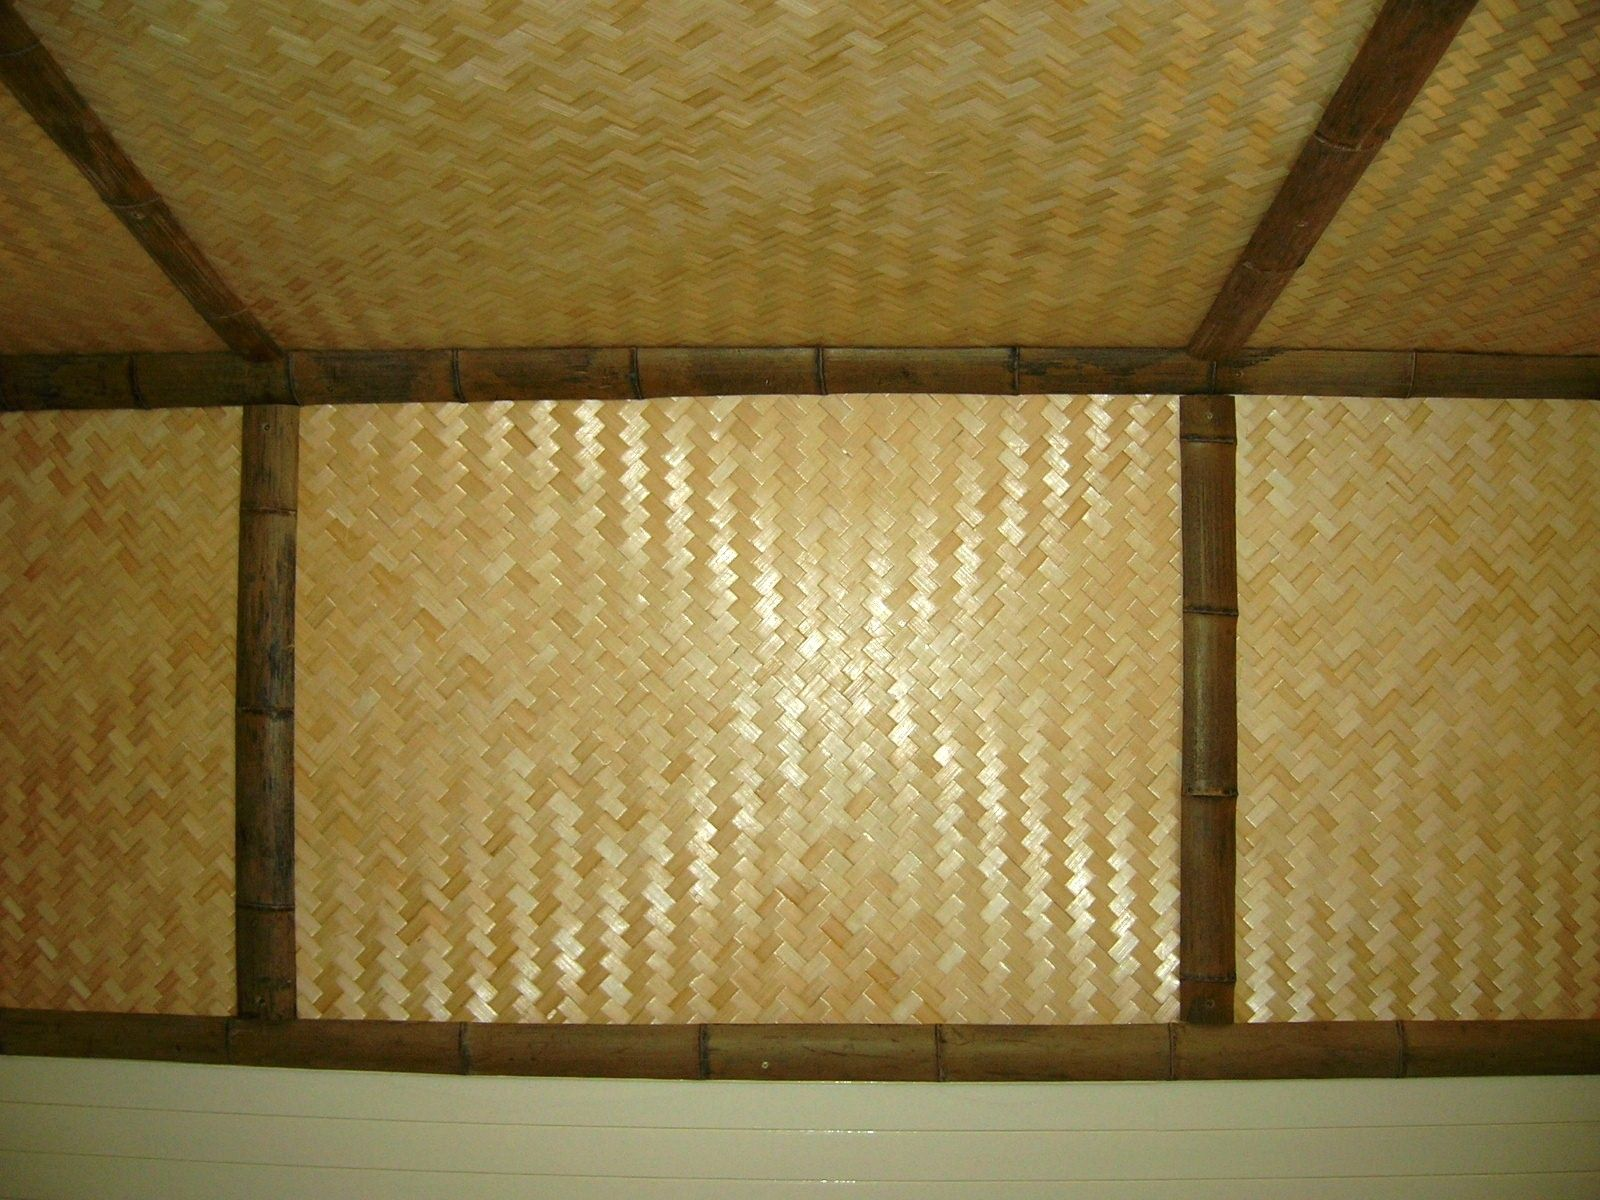 Bamboo Matting Ceiling Google Search Bamboo Bamboo